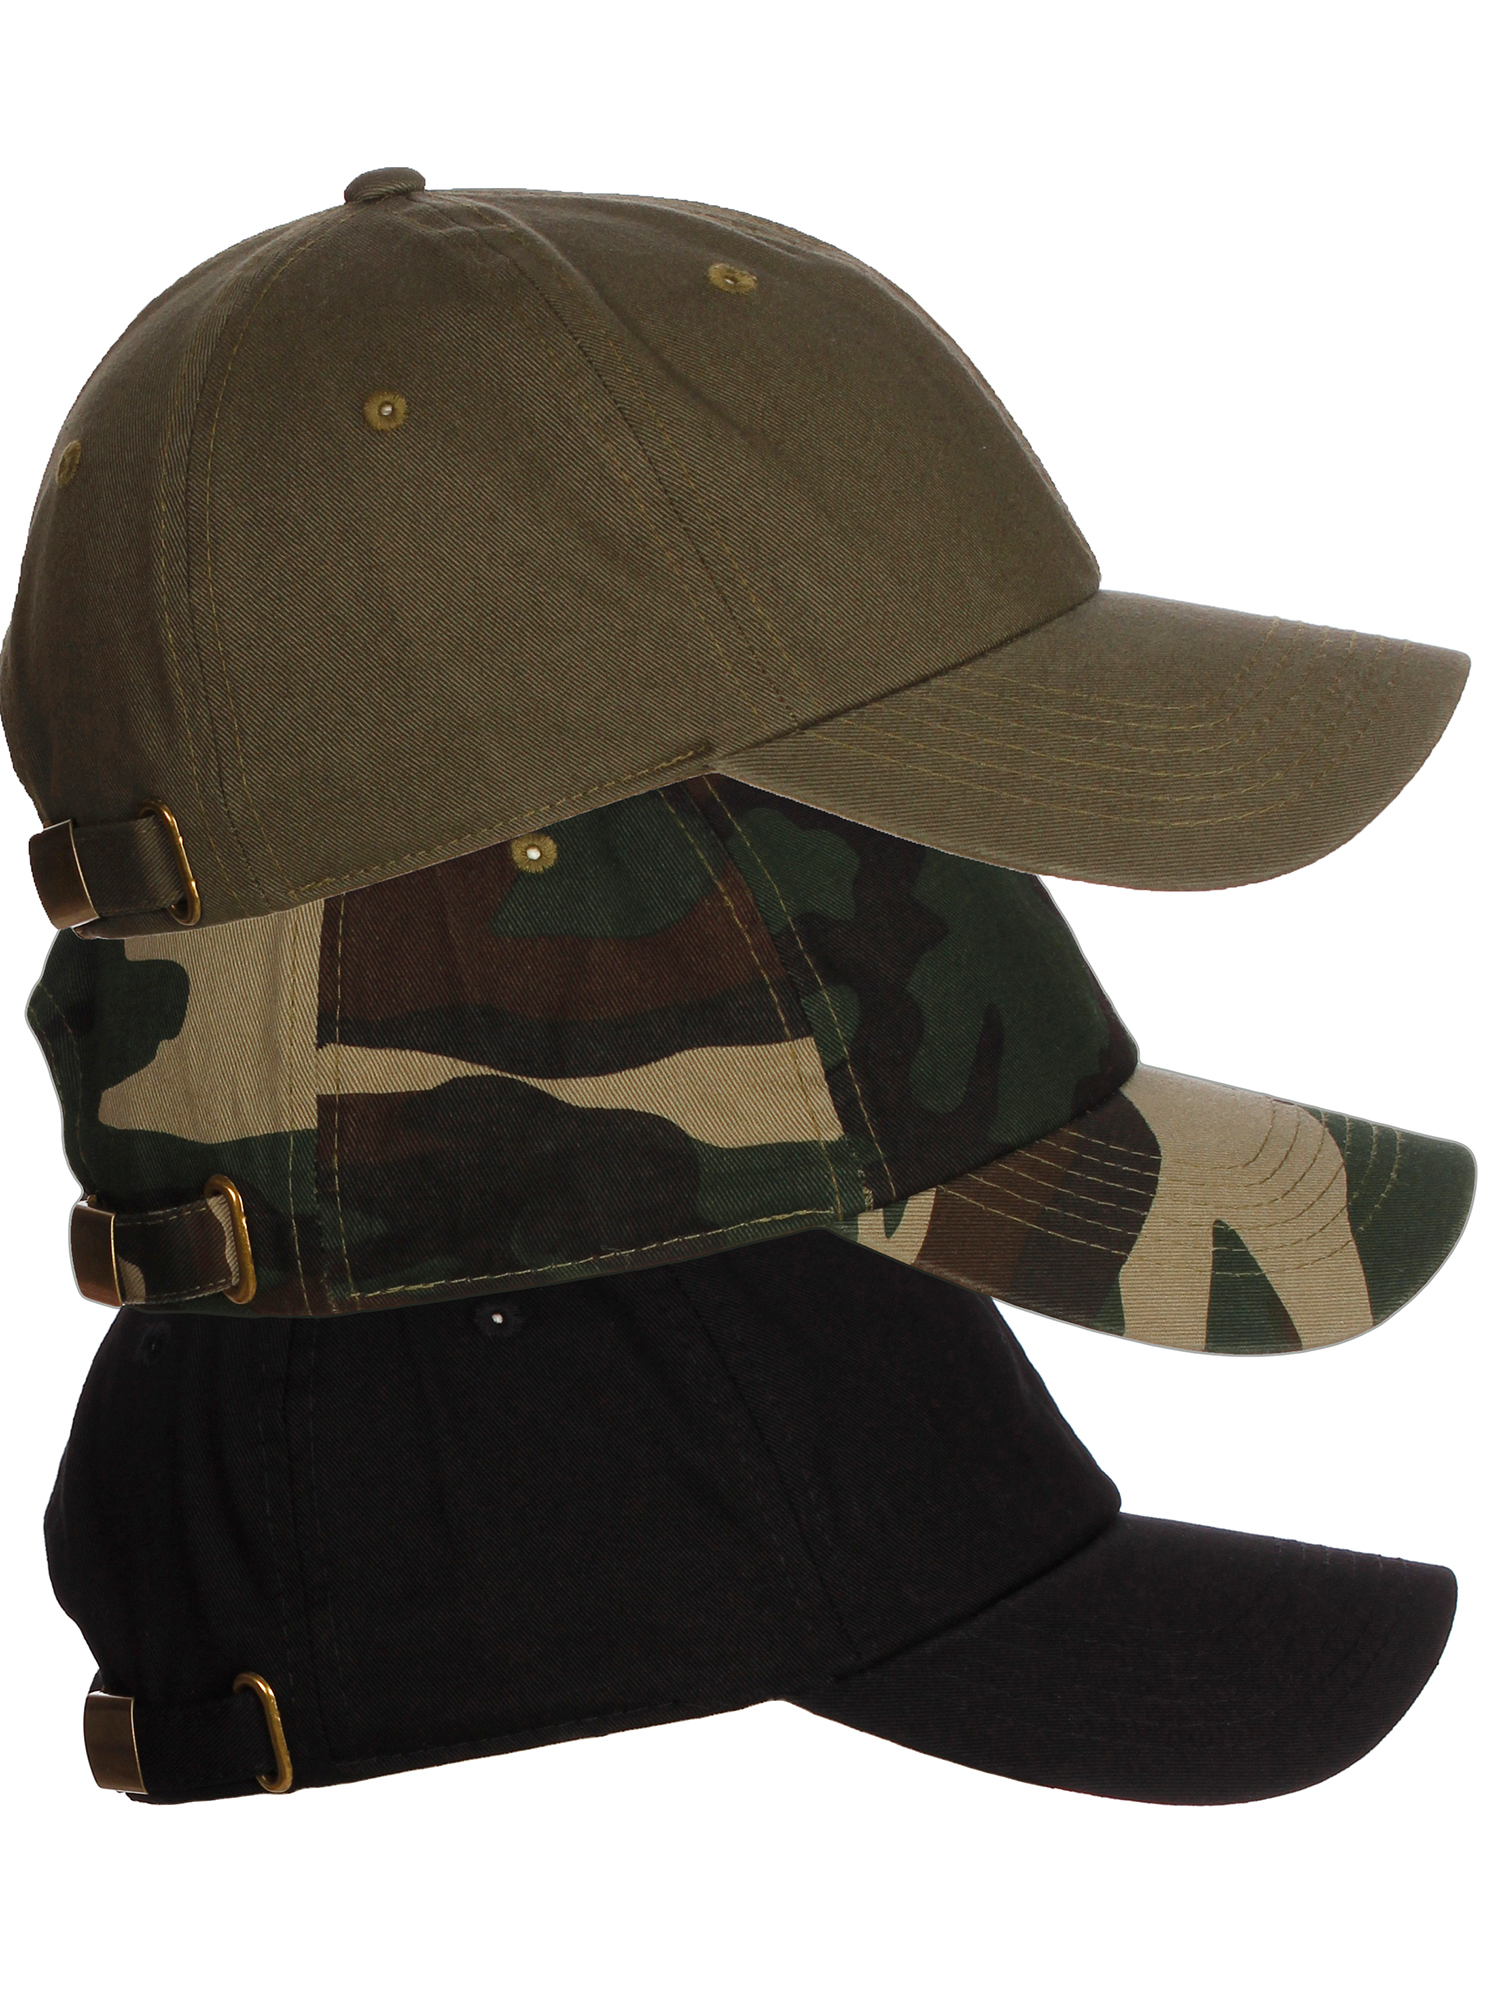 American Cities Plain Dad Hat 100 Cotton Unstructured Unisex Cap Adj Strap  3pk - Black Camo Olive. About this product. Picture 1 of 11  Picture 2 of  11 ... b13bcfef63fd